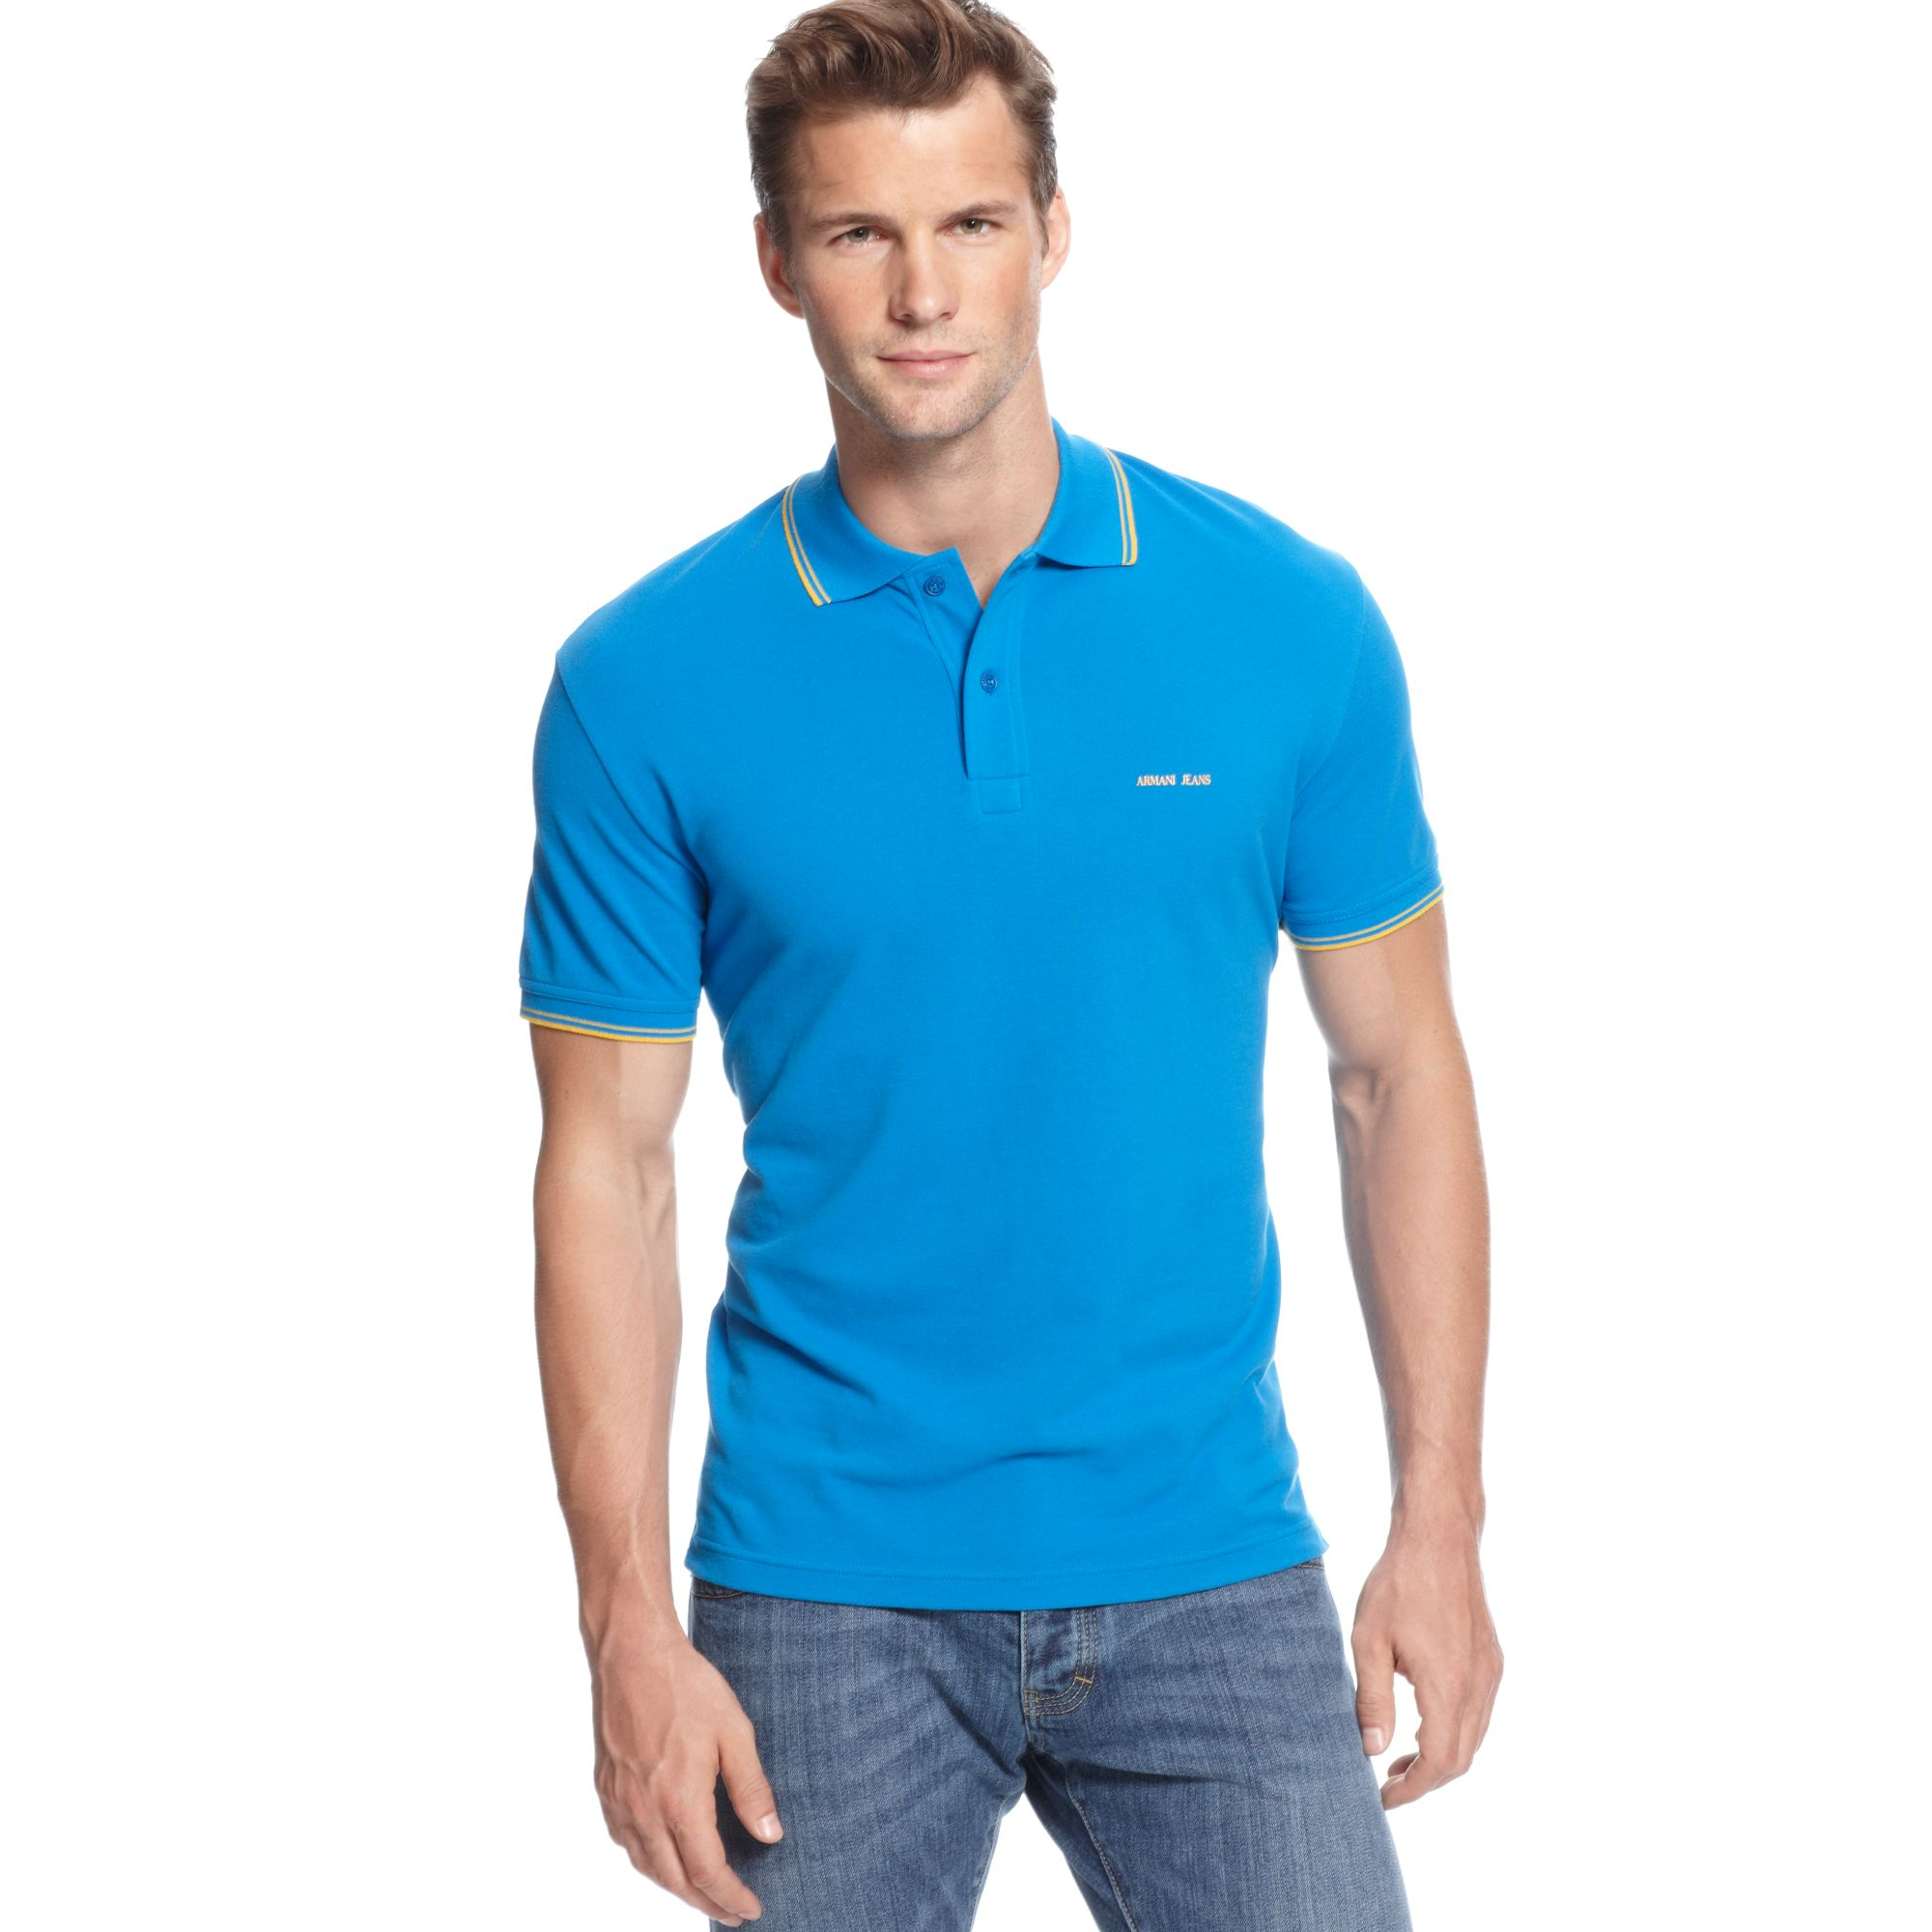 Mens Nike Polo Shirts